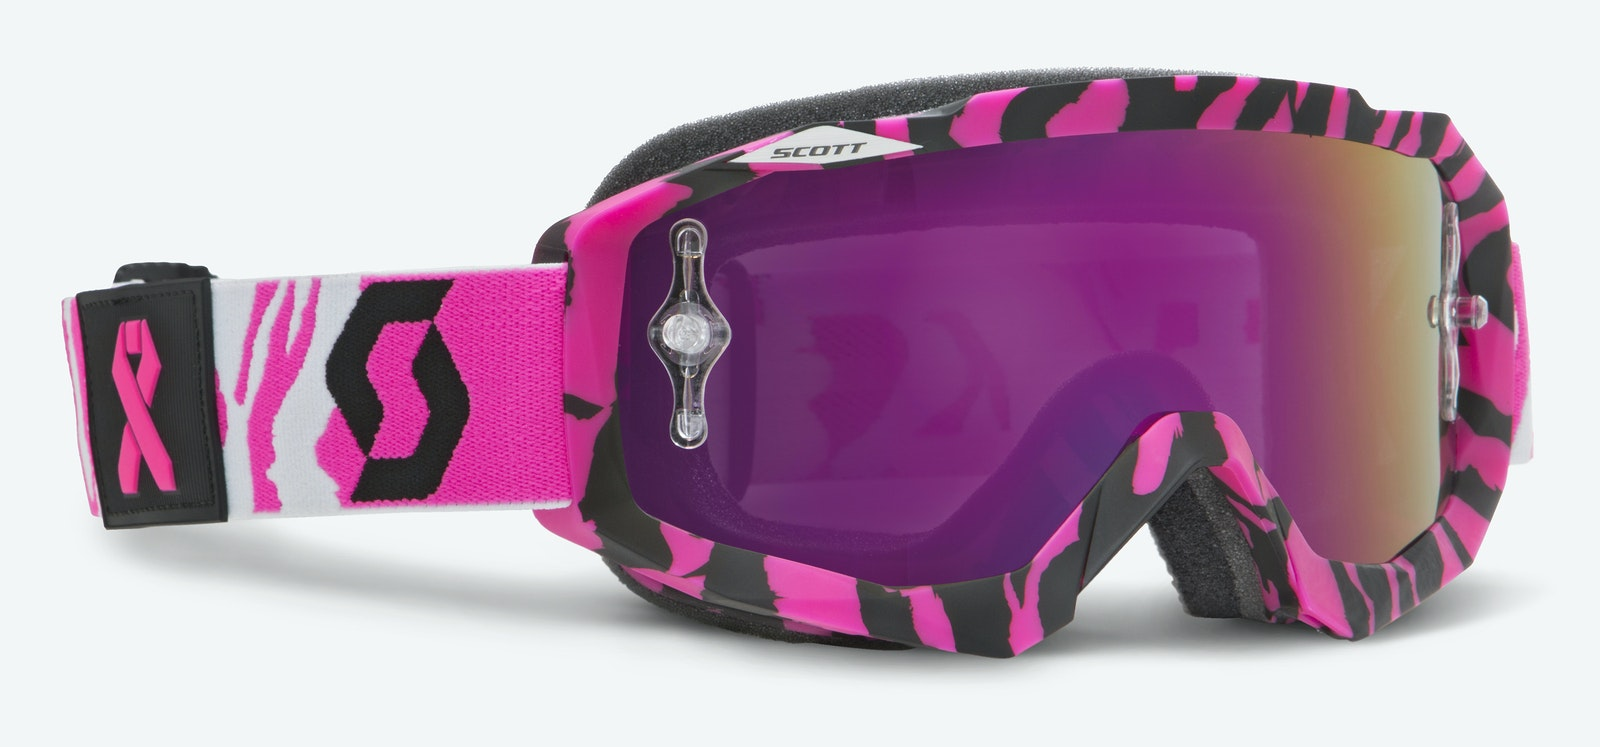 Bca goggle right view product 2016 motosports scott sports